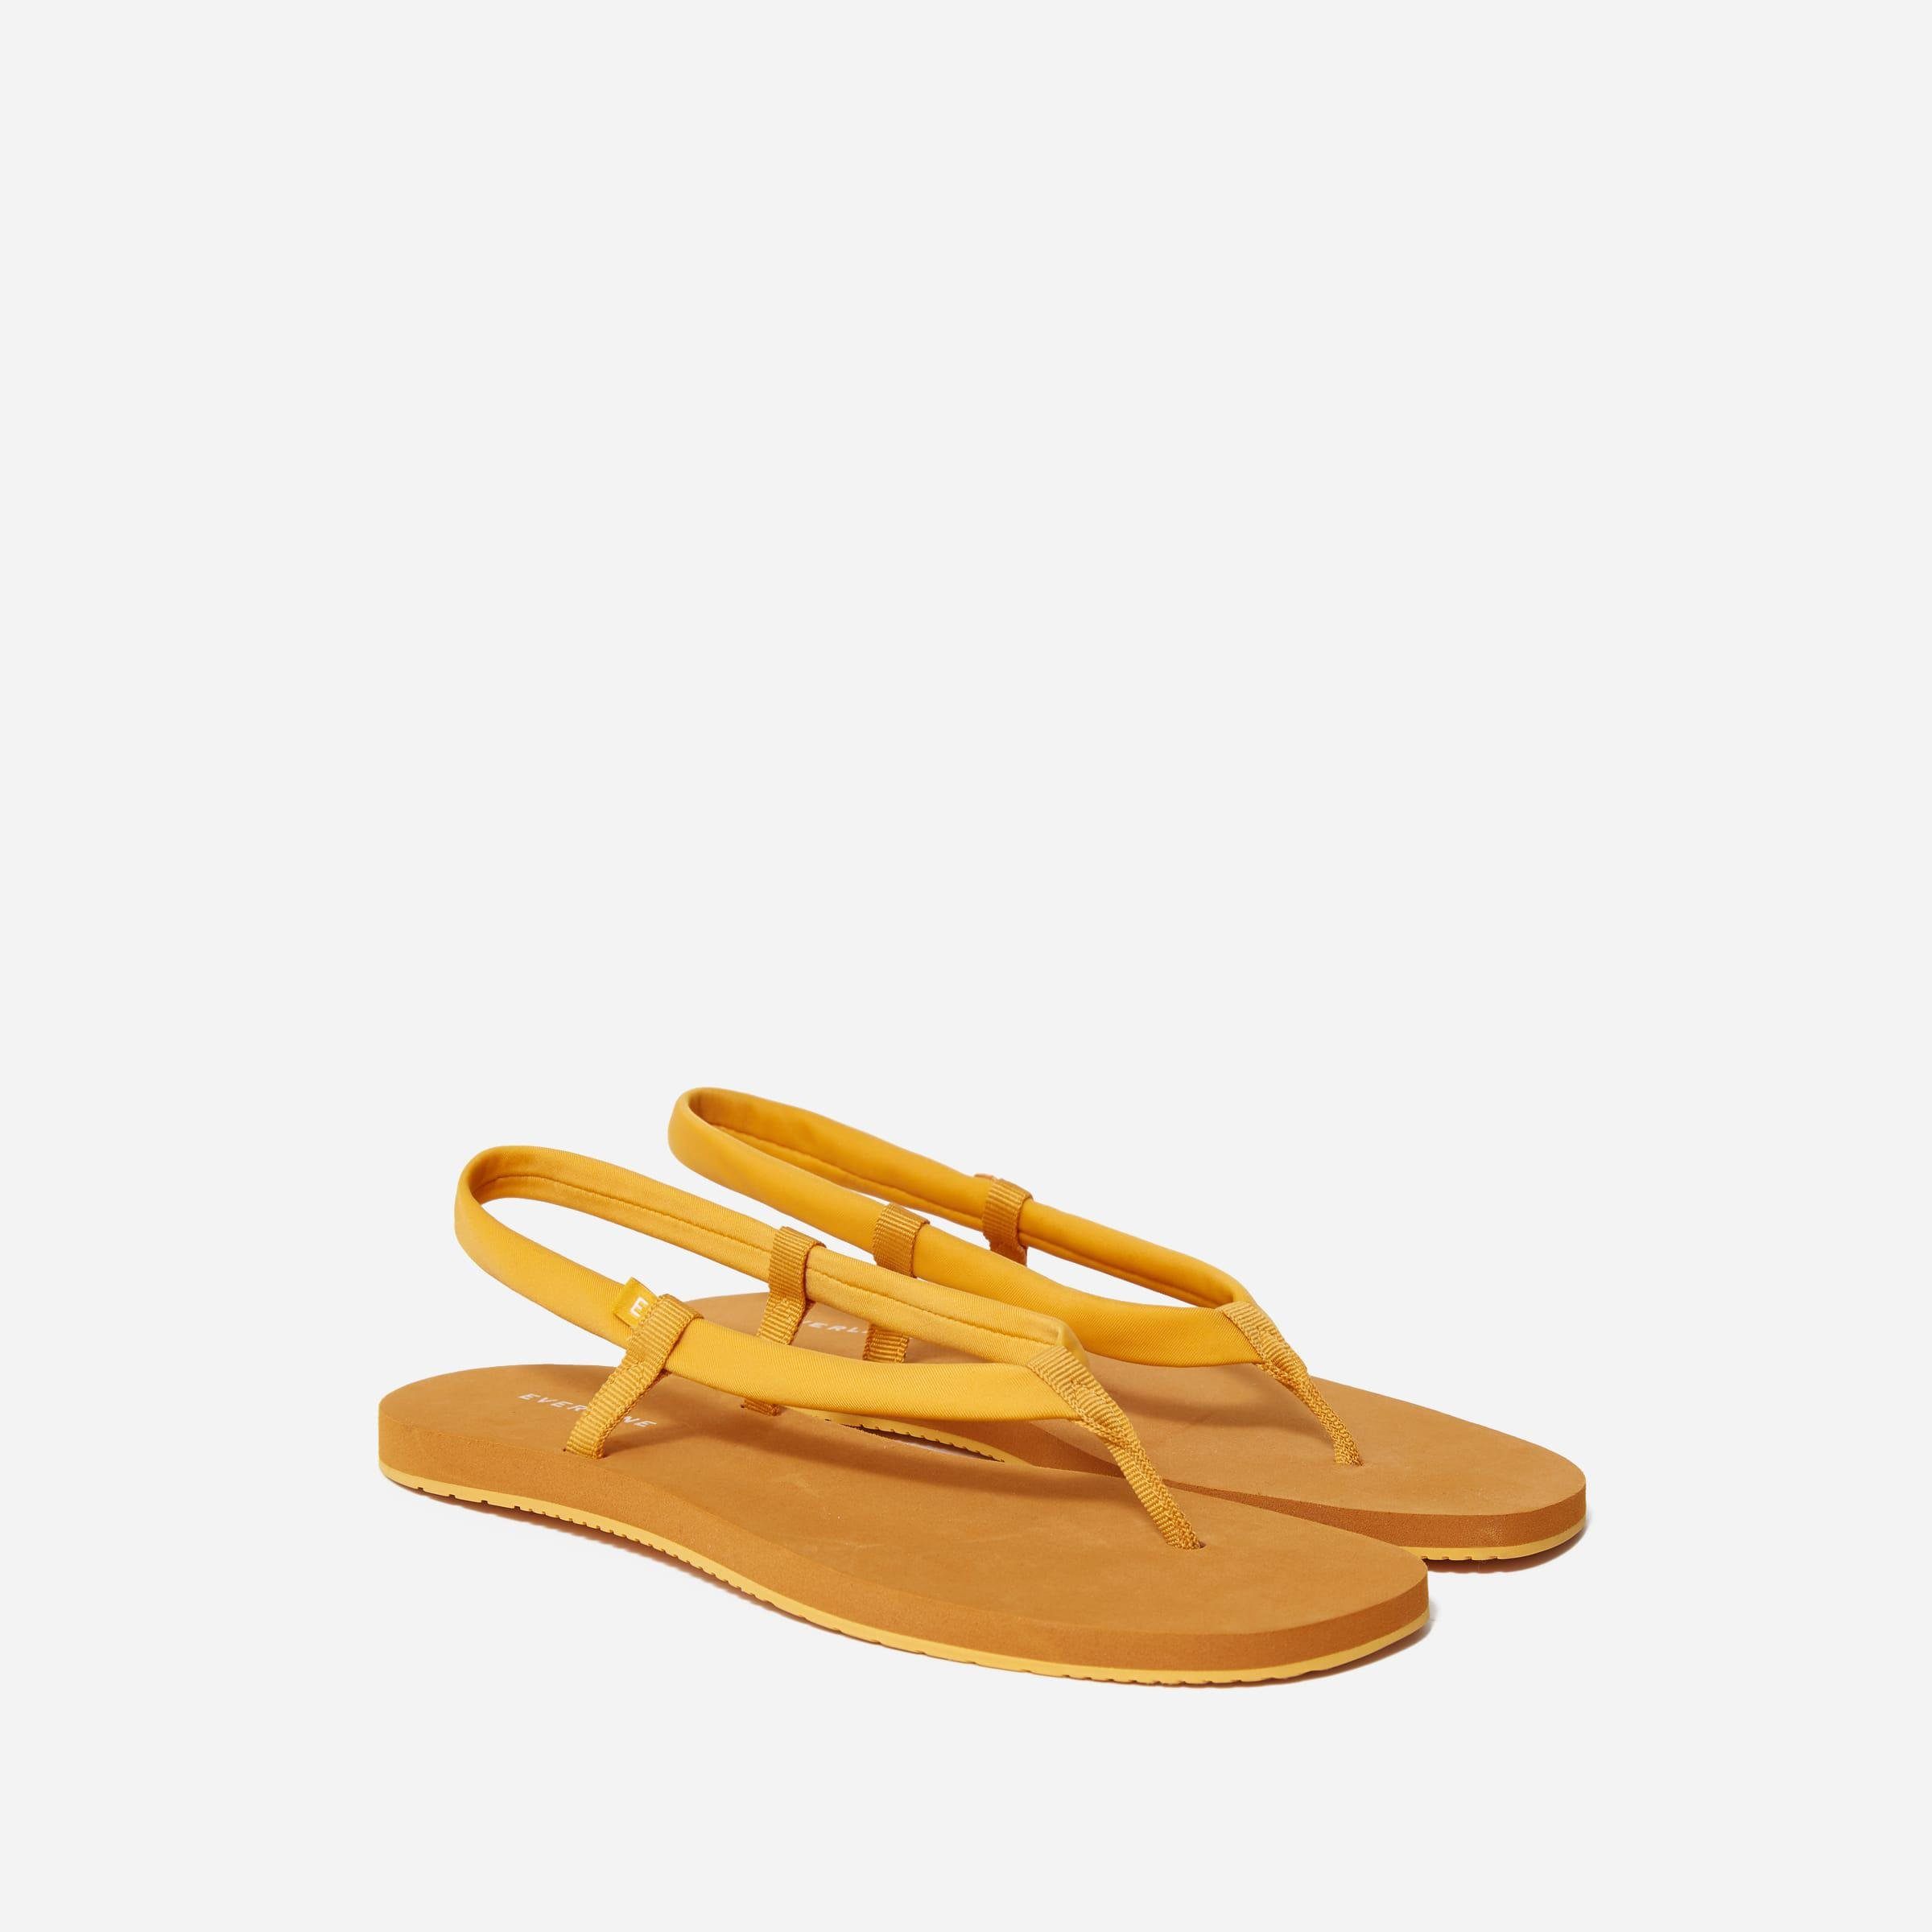 The ReNew Strappy Sandal 1